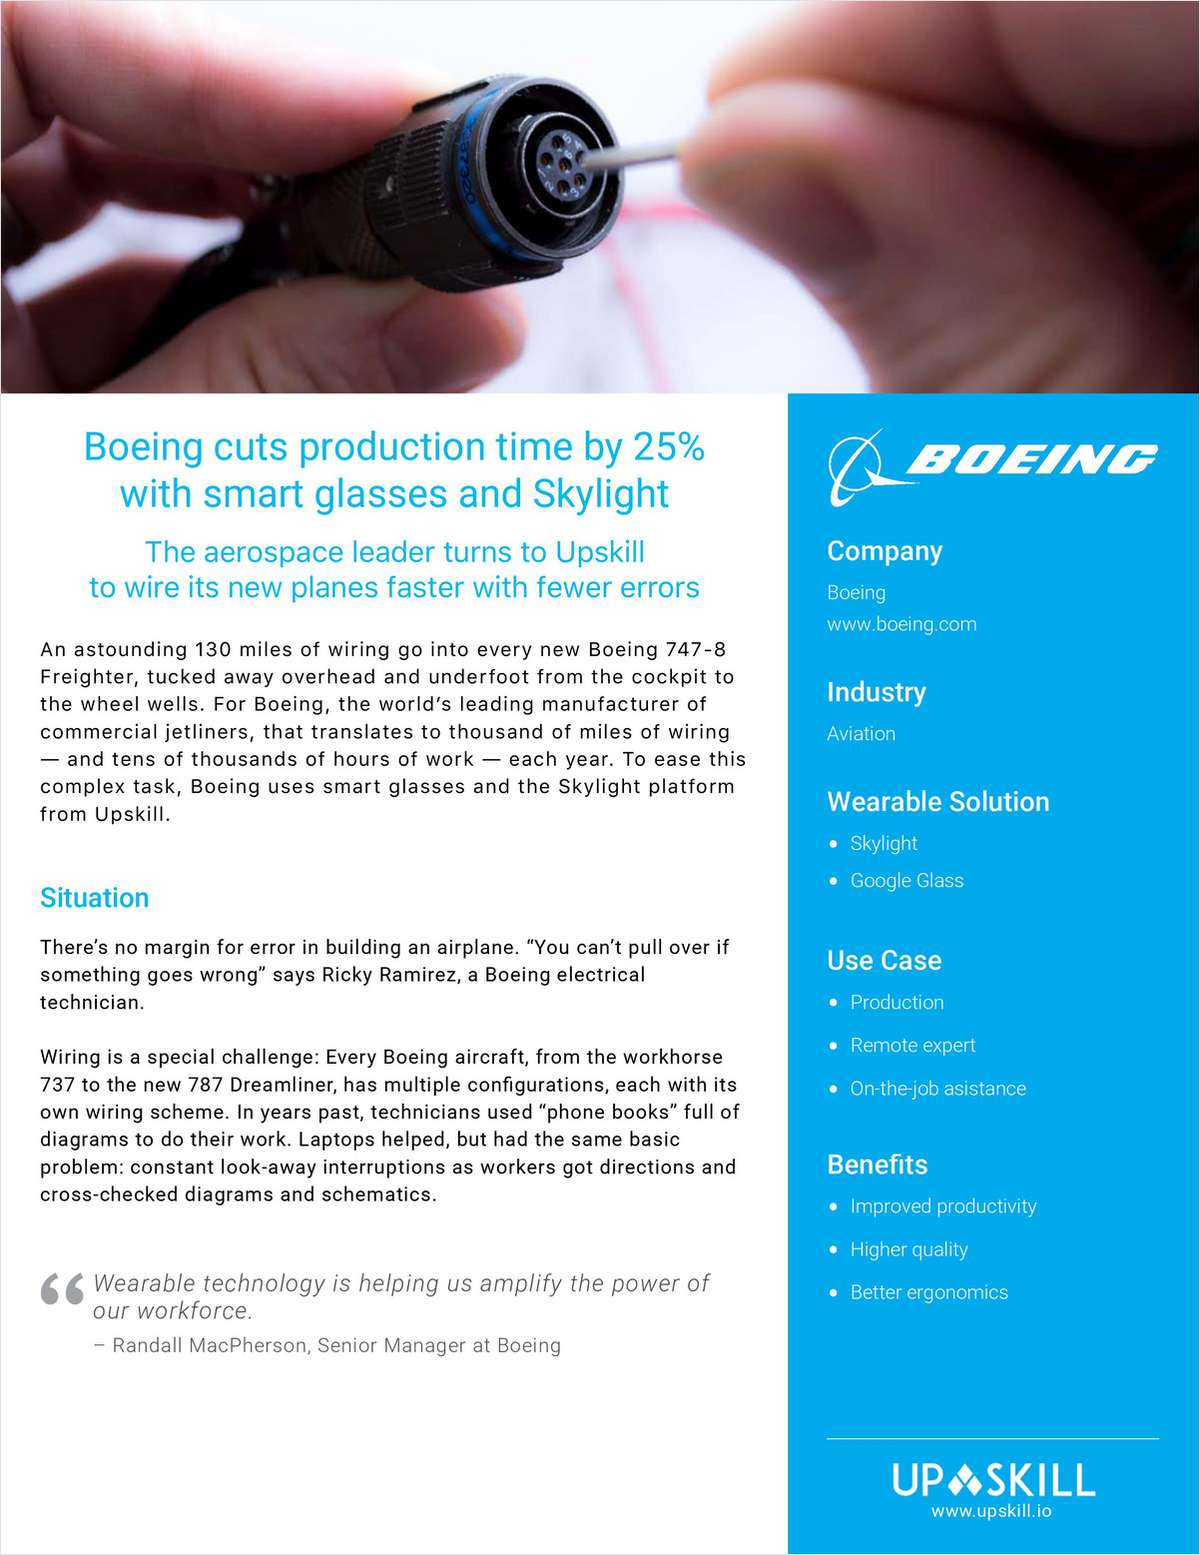 How Boeing Cut Production Time by 25% with Industrial AR Glasses